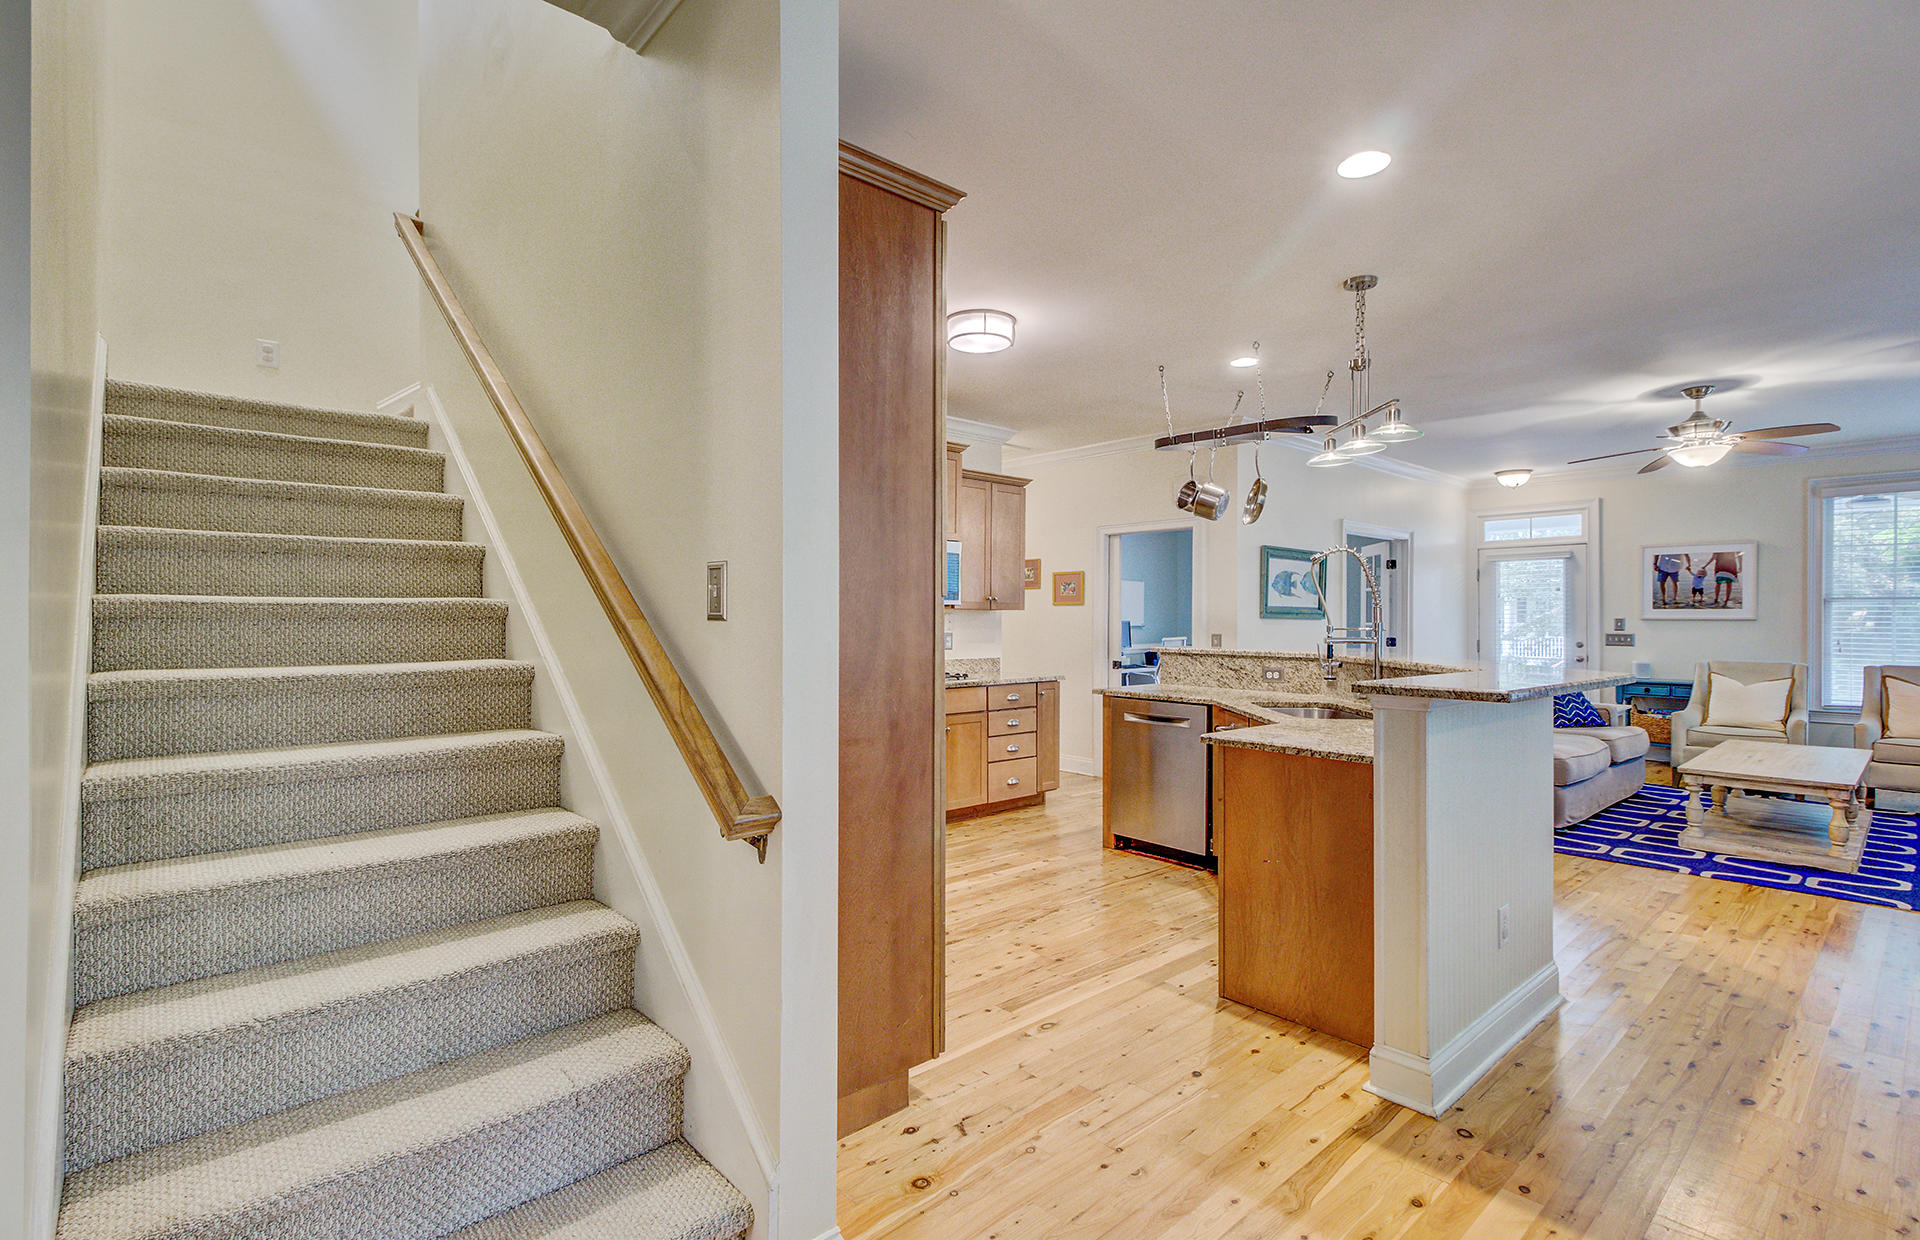 The Villages In St Johns Woods Homes For Sale - 5032 Coral Reef, Johns Island, SC - 7